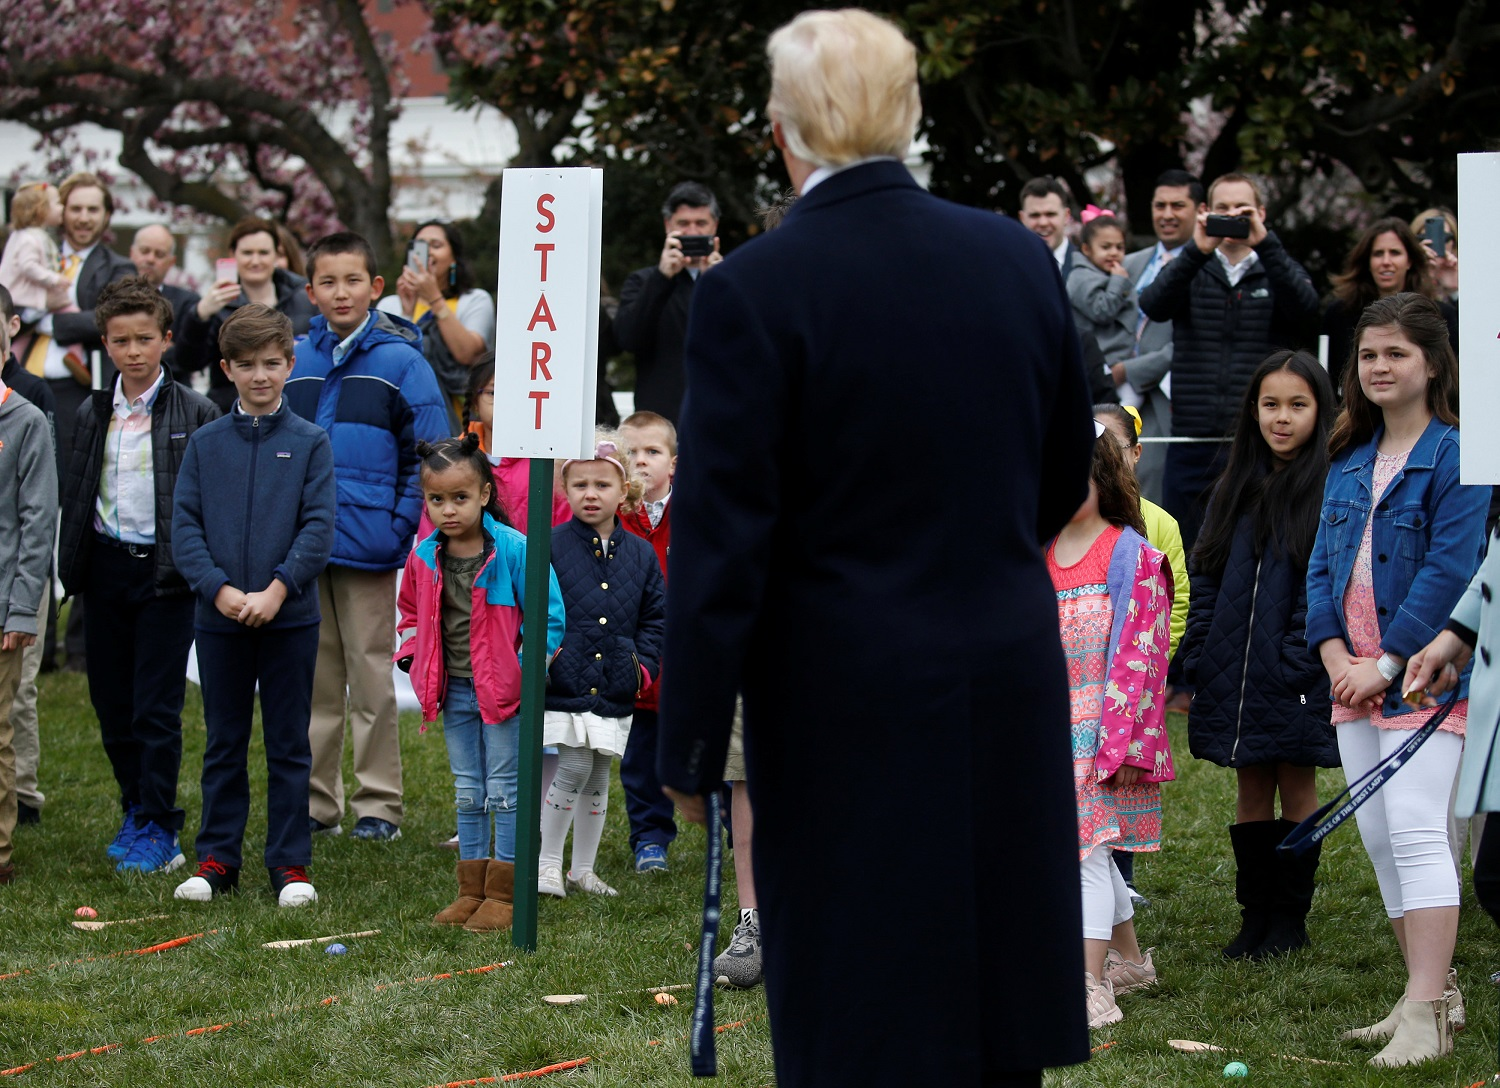 U.S. President Donald Trump greets children before blowing the whistle for their egg roll during the annual White House Easter Egg Roll on the South Lawn of the White House in Washington, April 2, 2018. REUTERS/Leah Millis